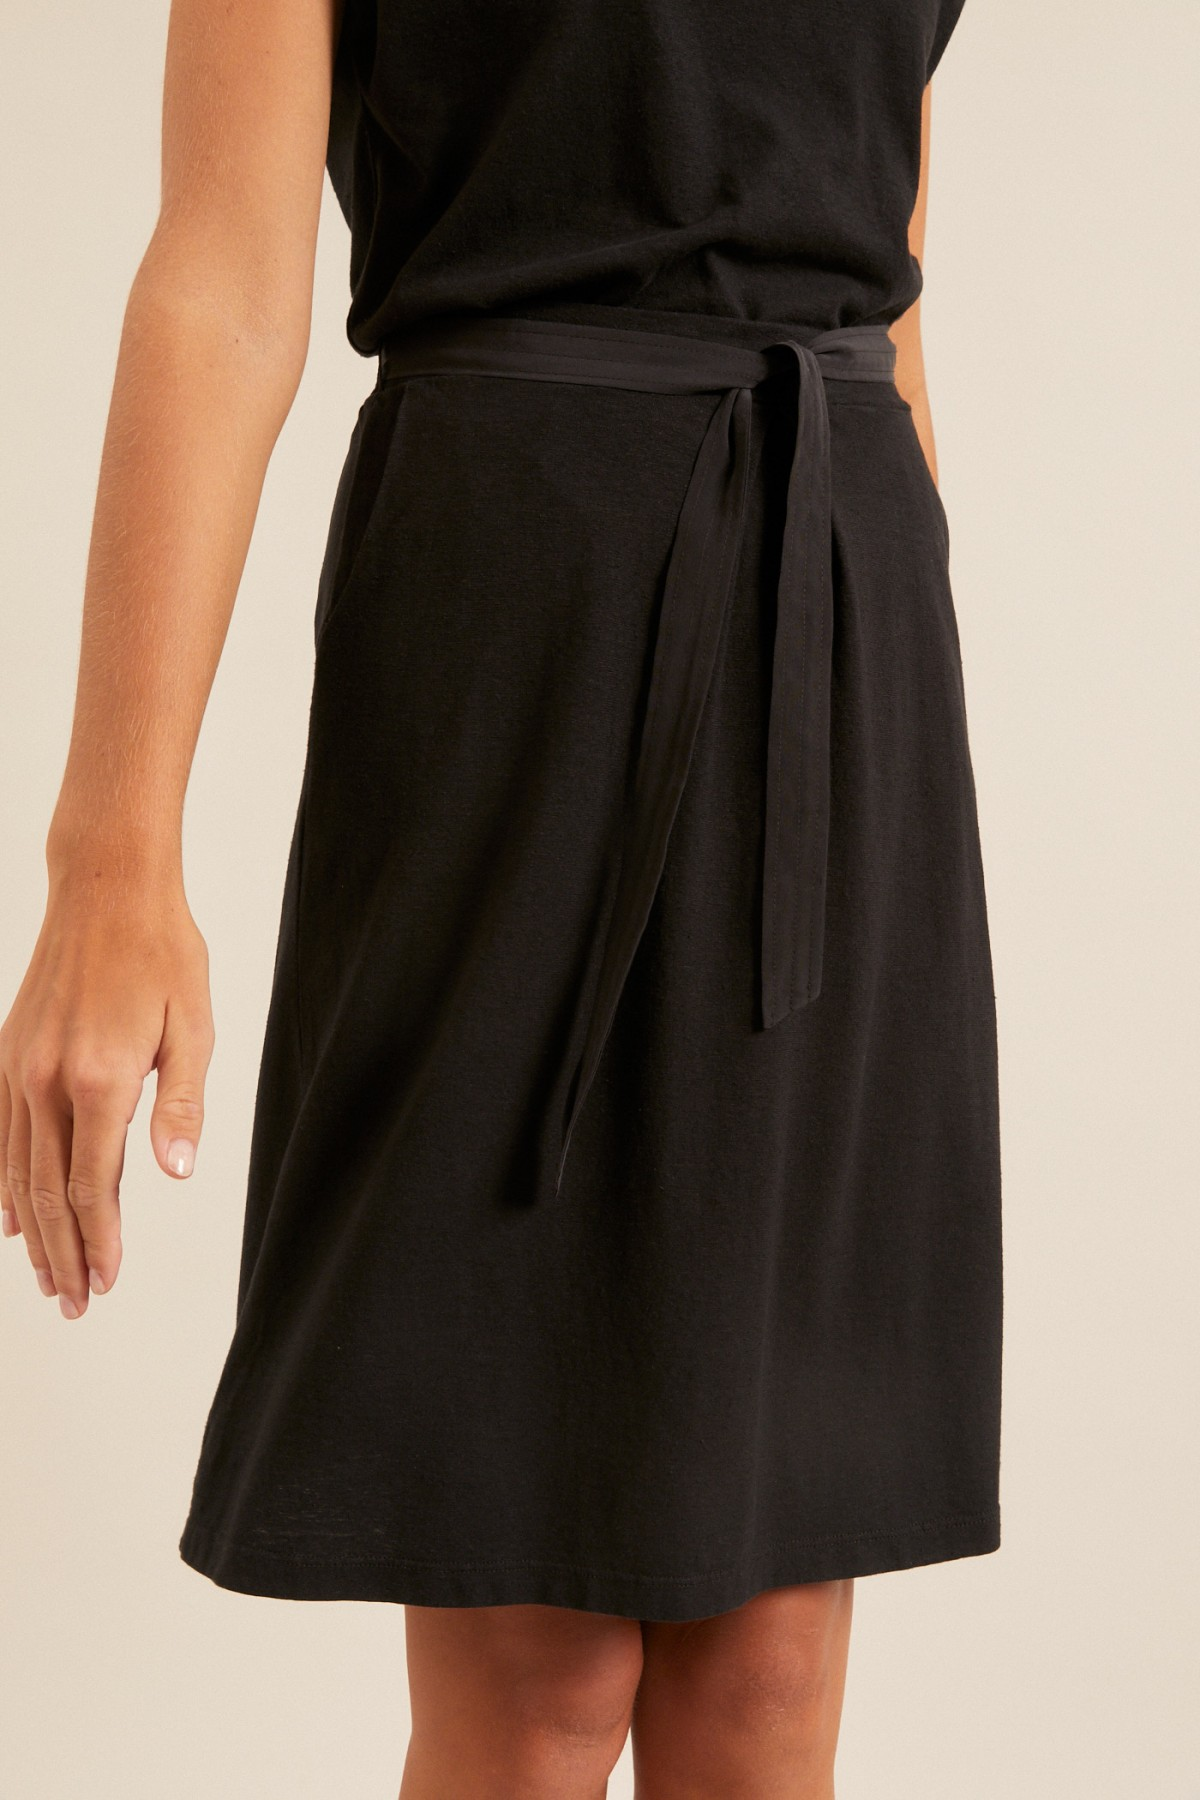 SKIRT with silk belt made of hemp with organic cotton